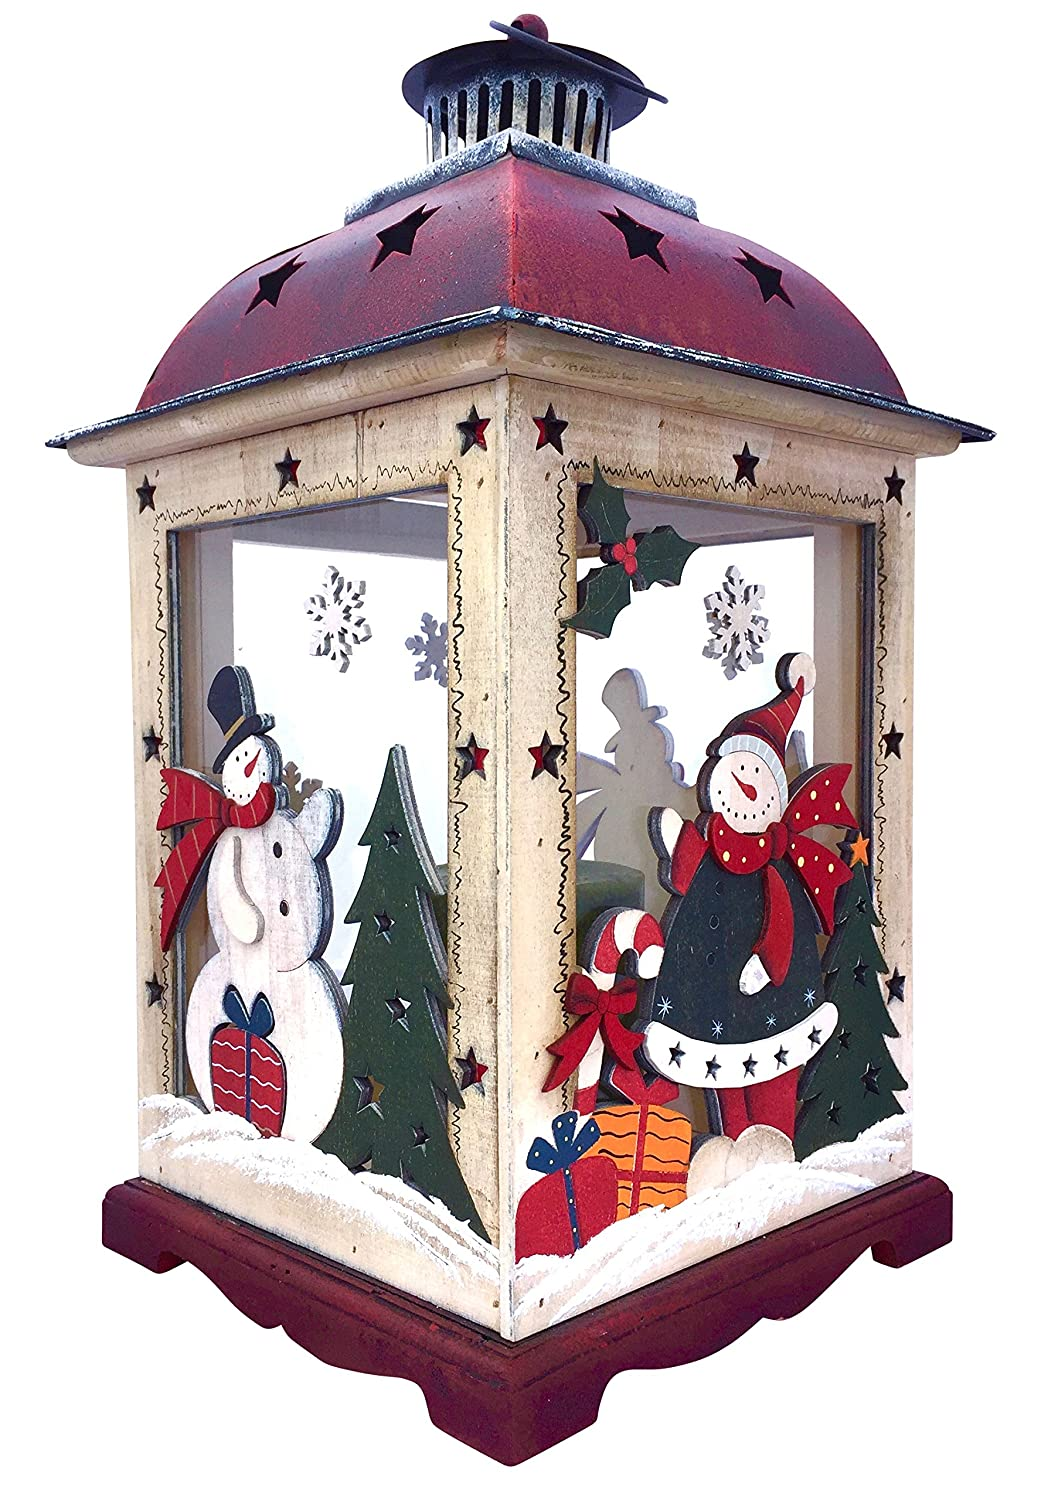 Hand Painted Whimsical Christmas Lantern Candle Holder | ChristmasTablescapeDecor.com